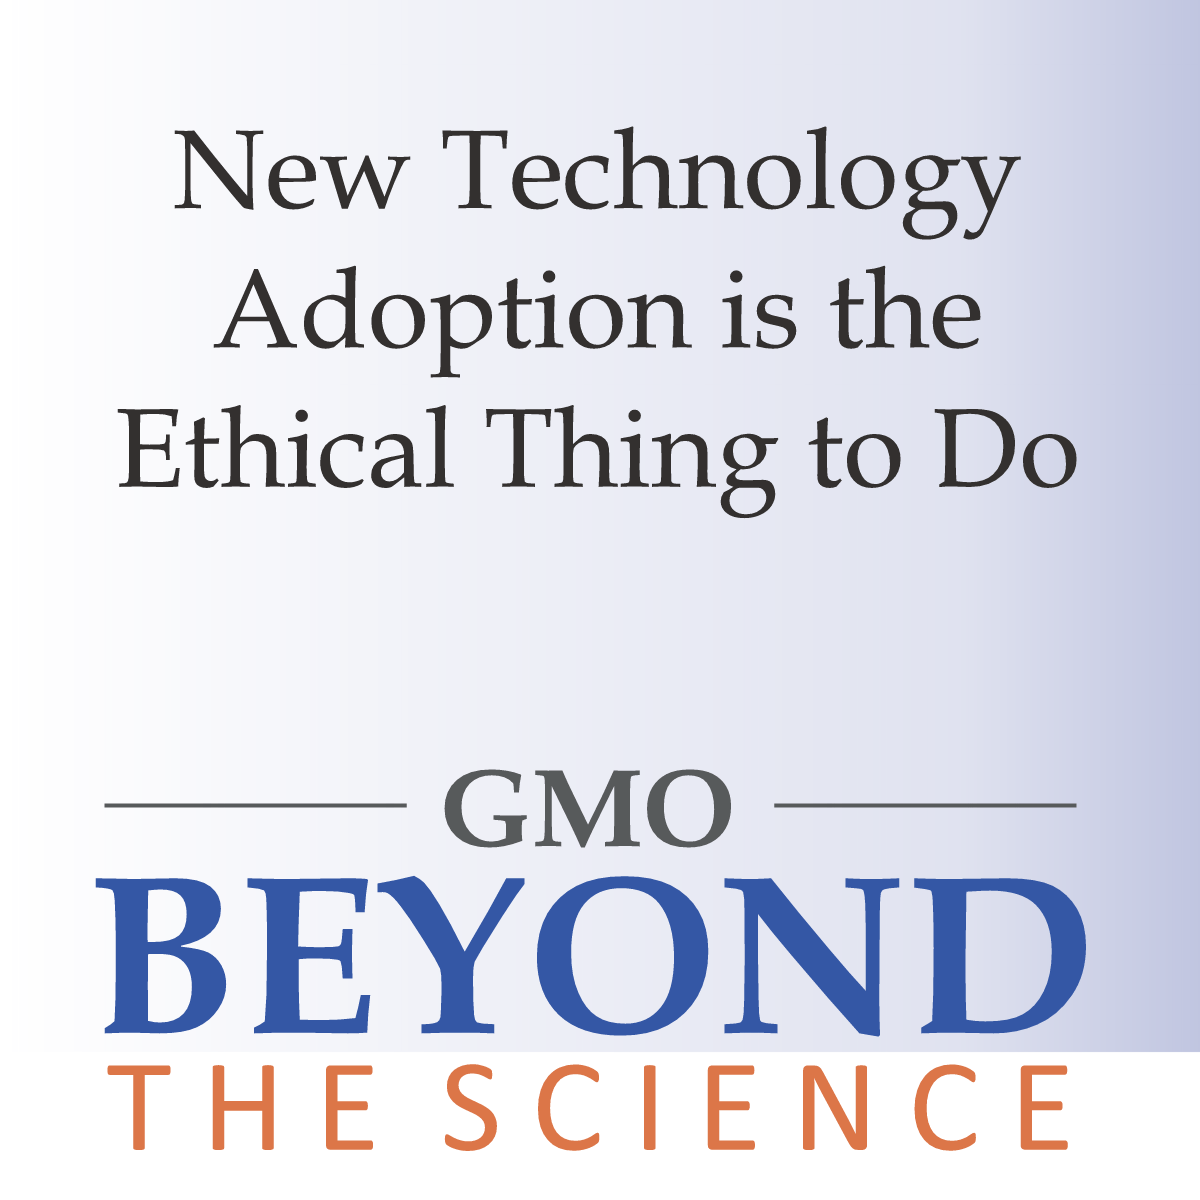 New Technology Adoption Is The Ethical Thing To Do